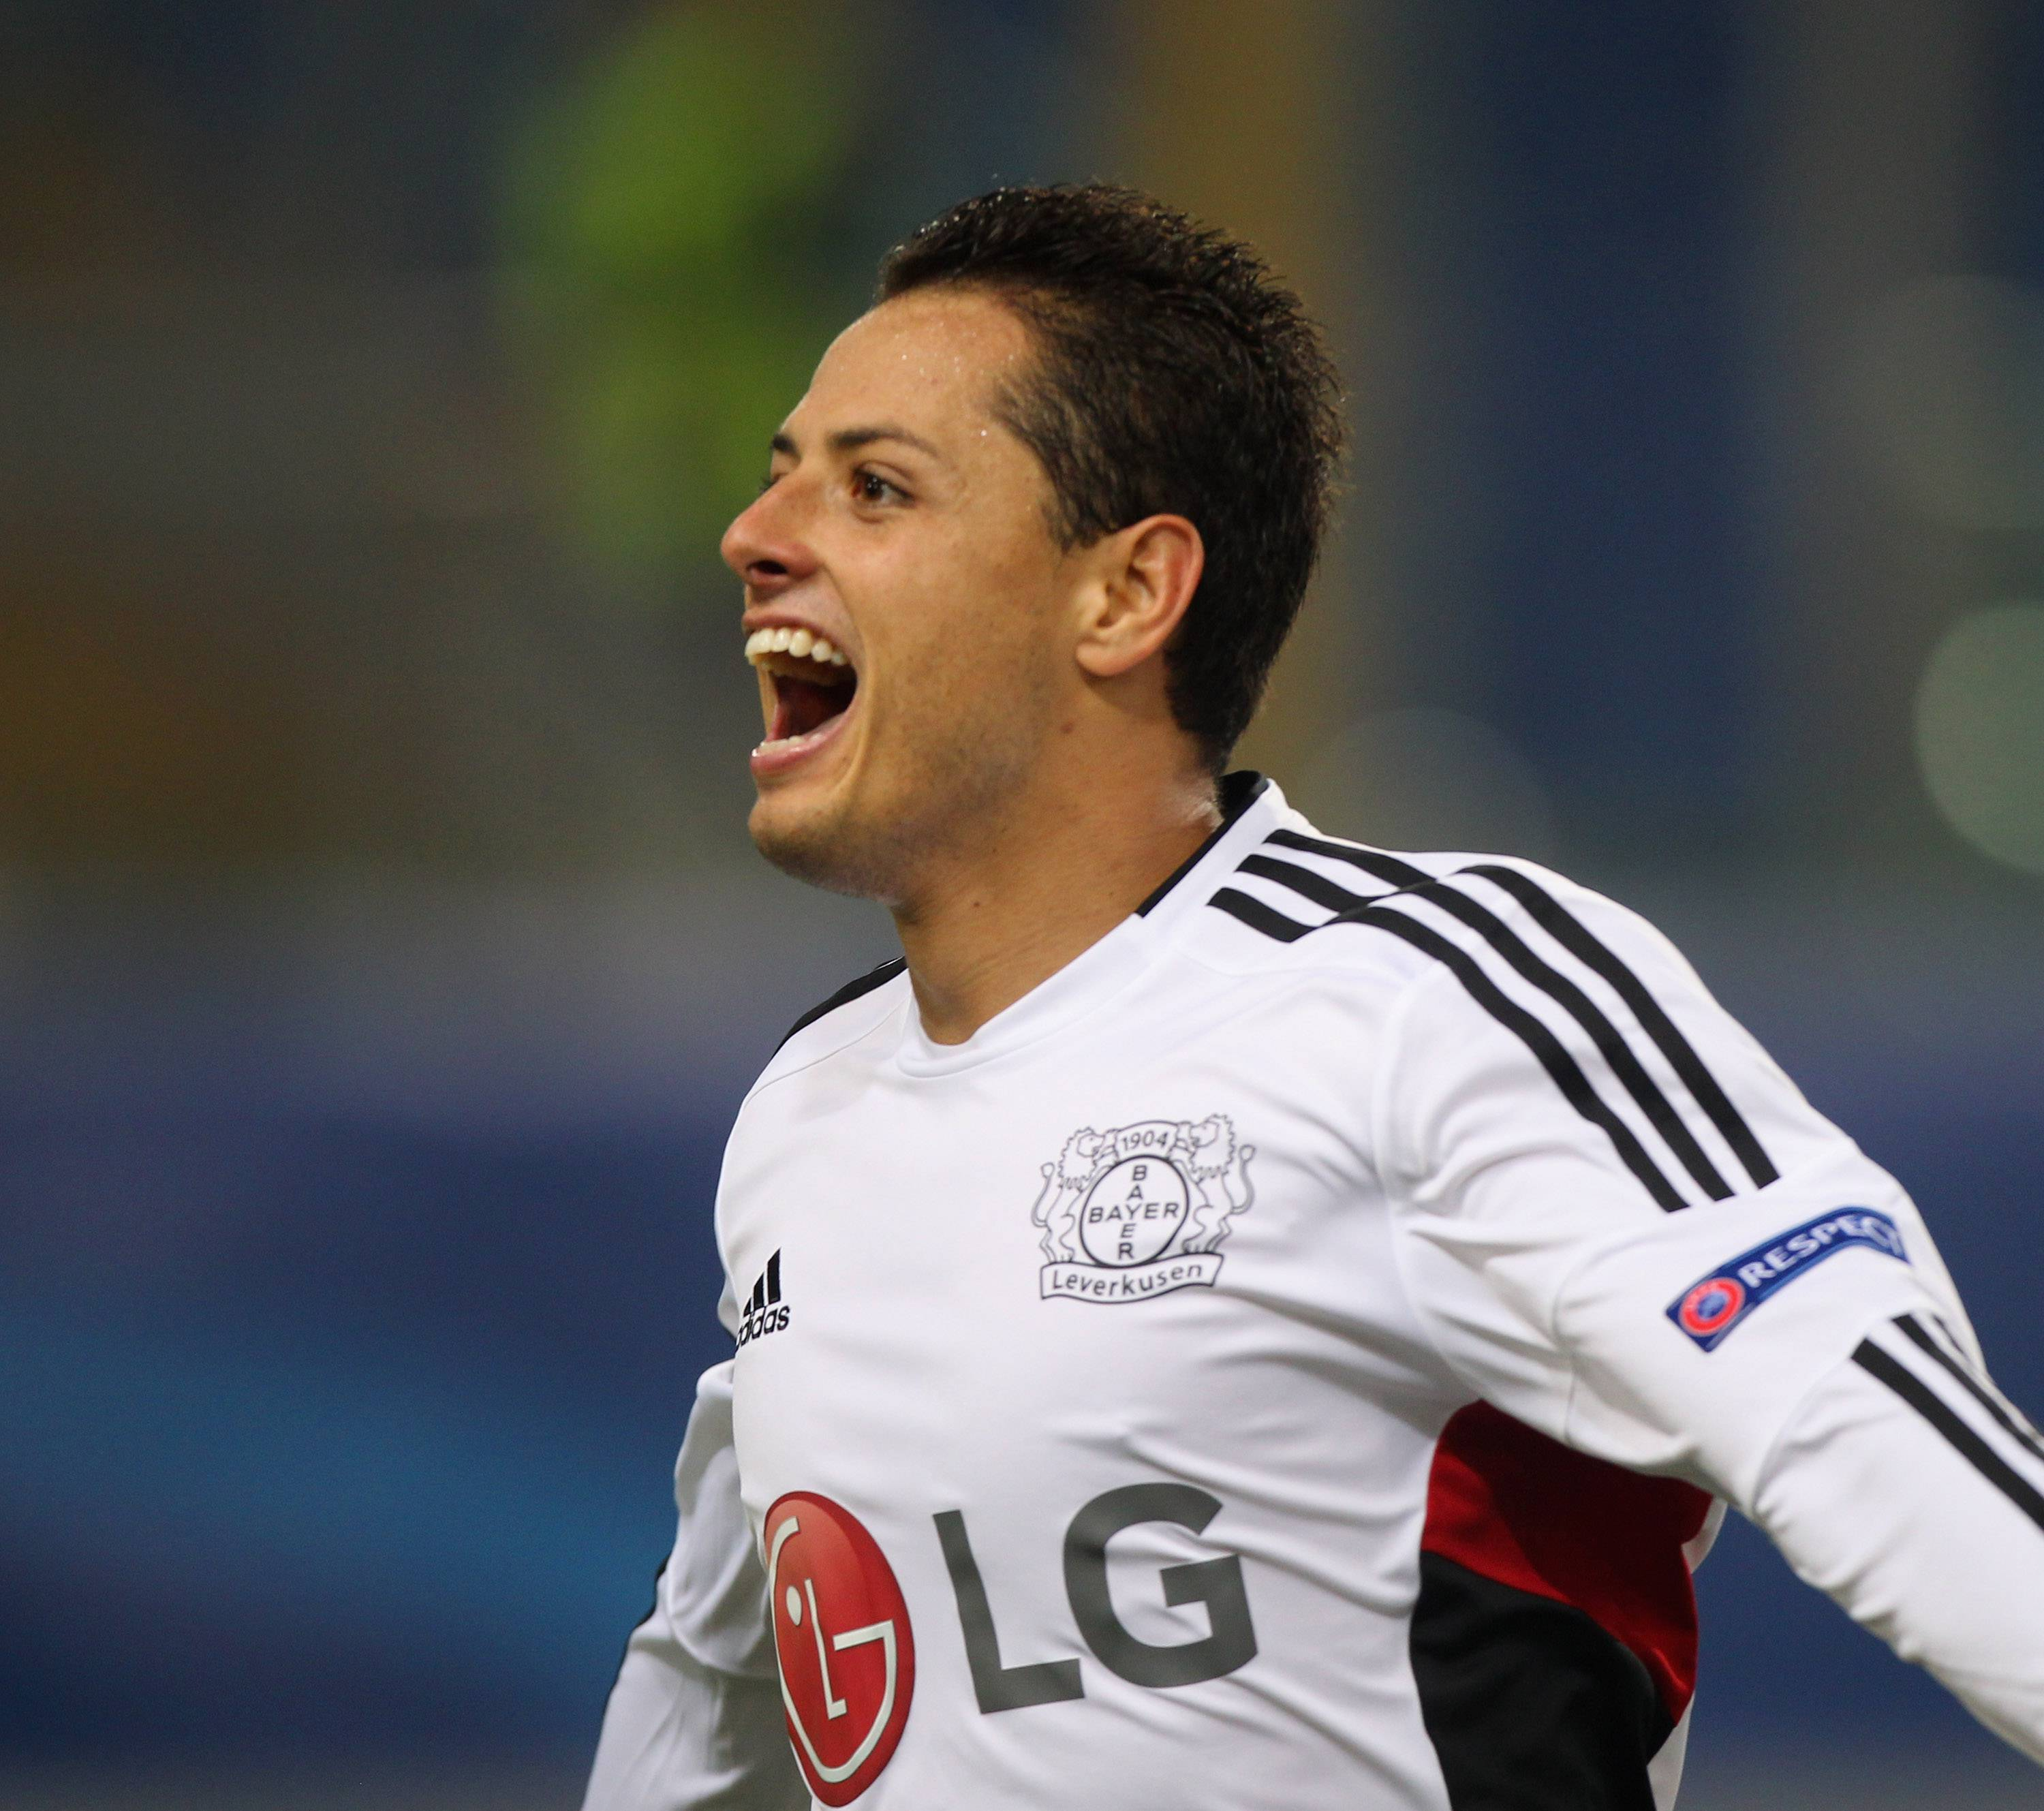 Chicharito Hernandez west ham